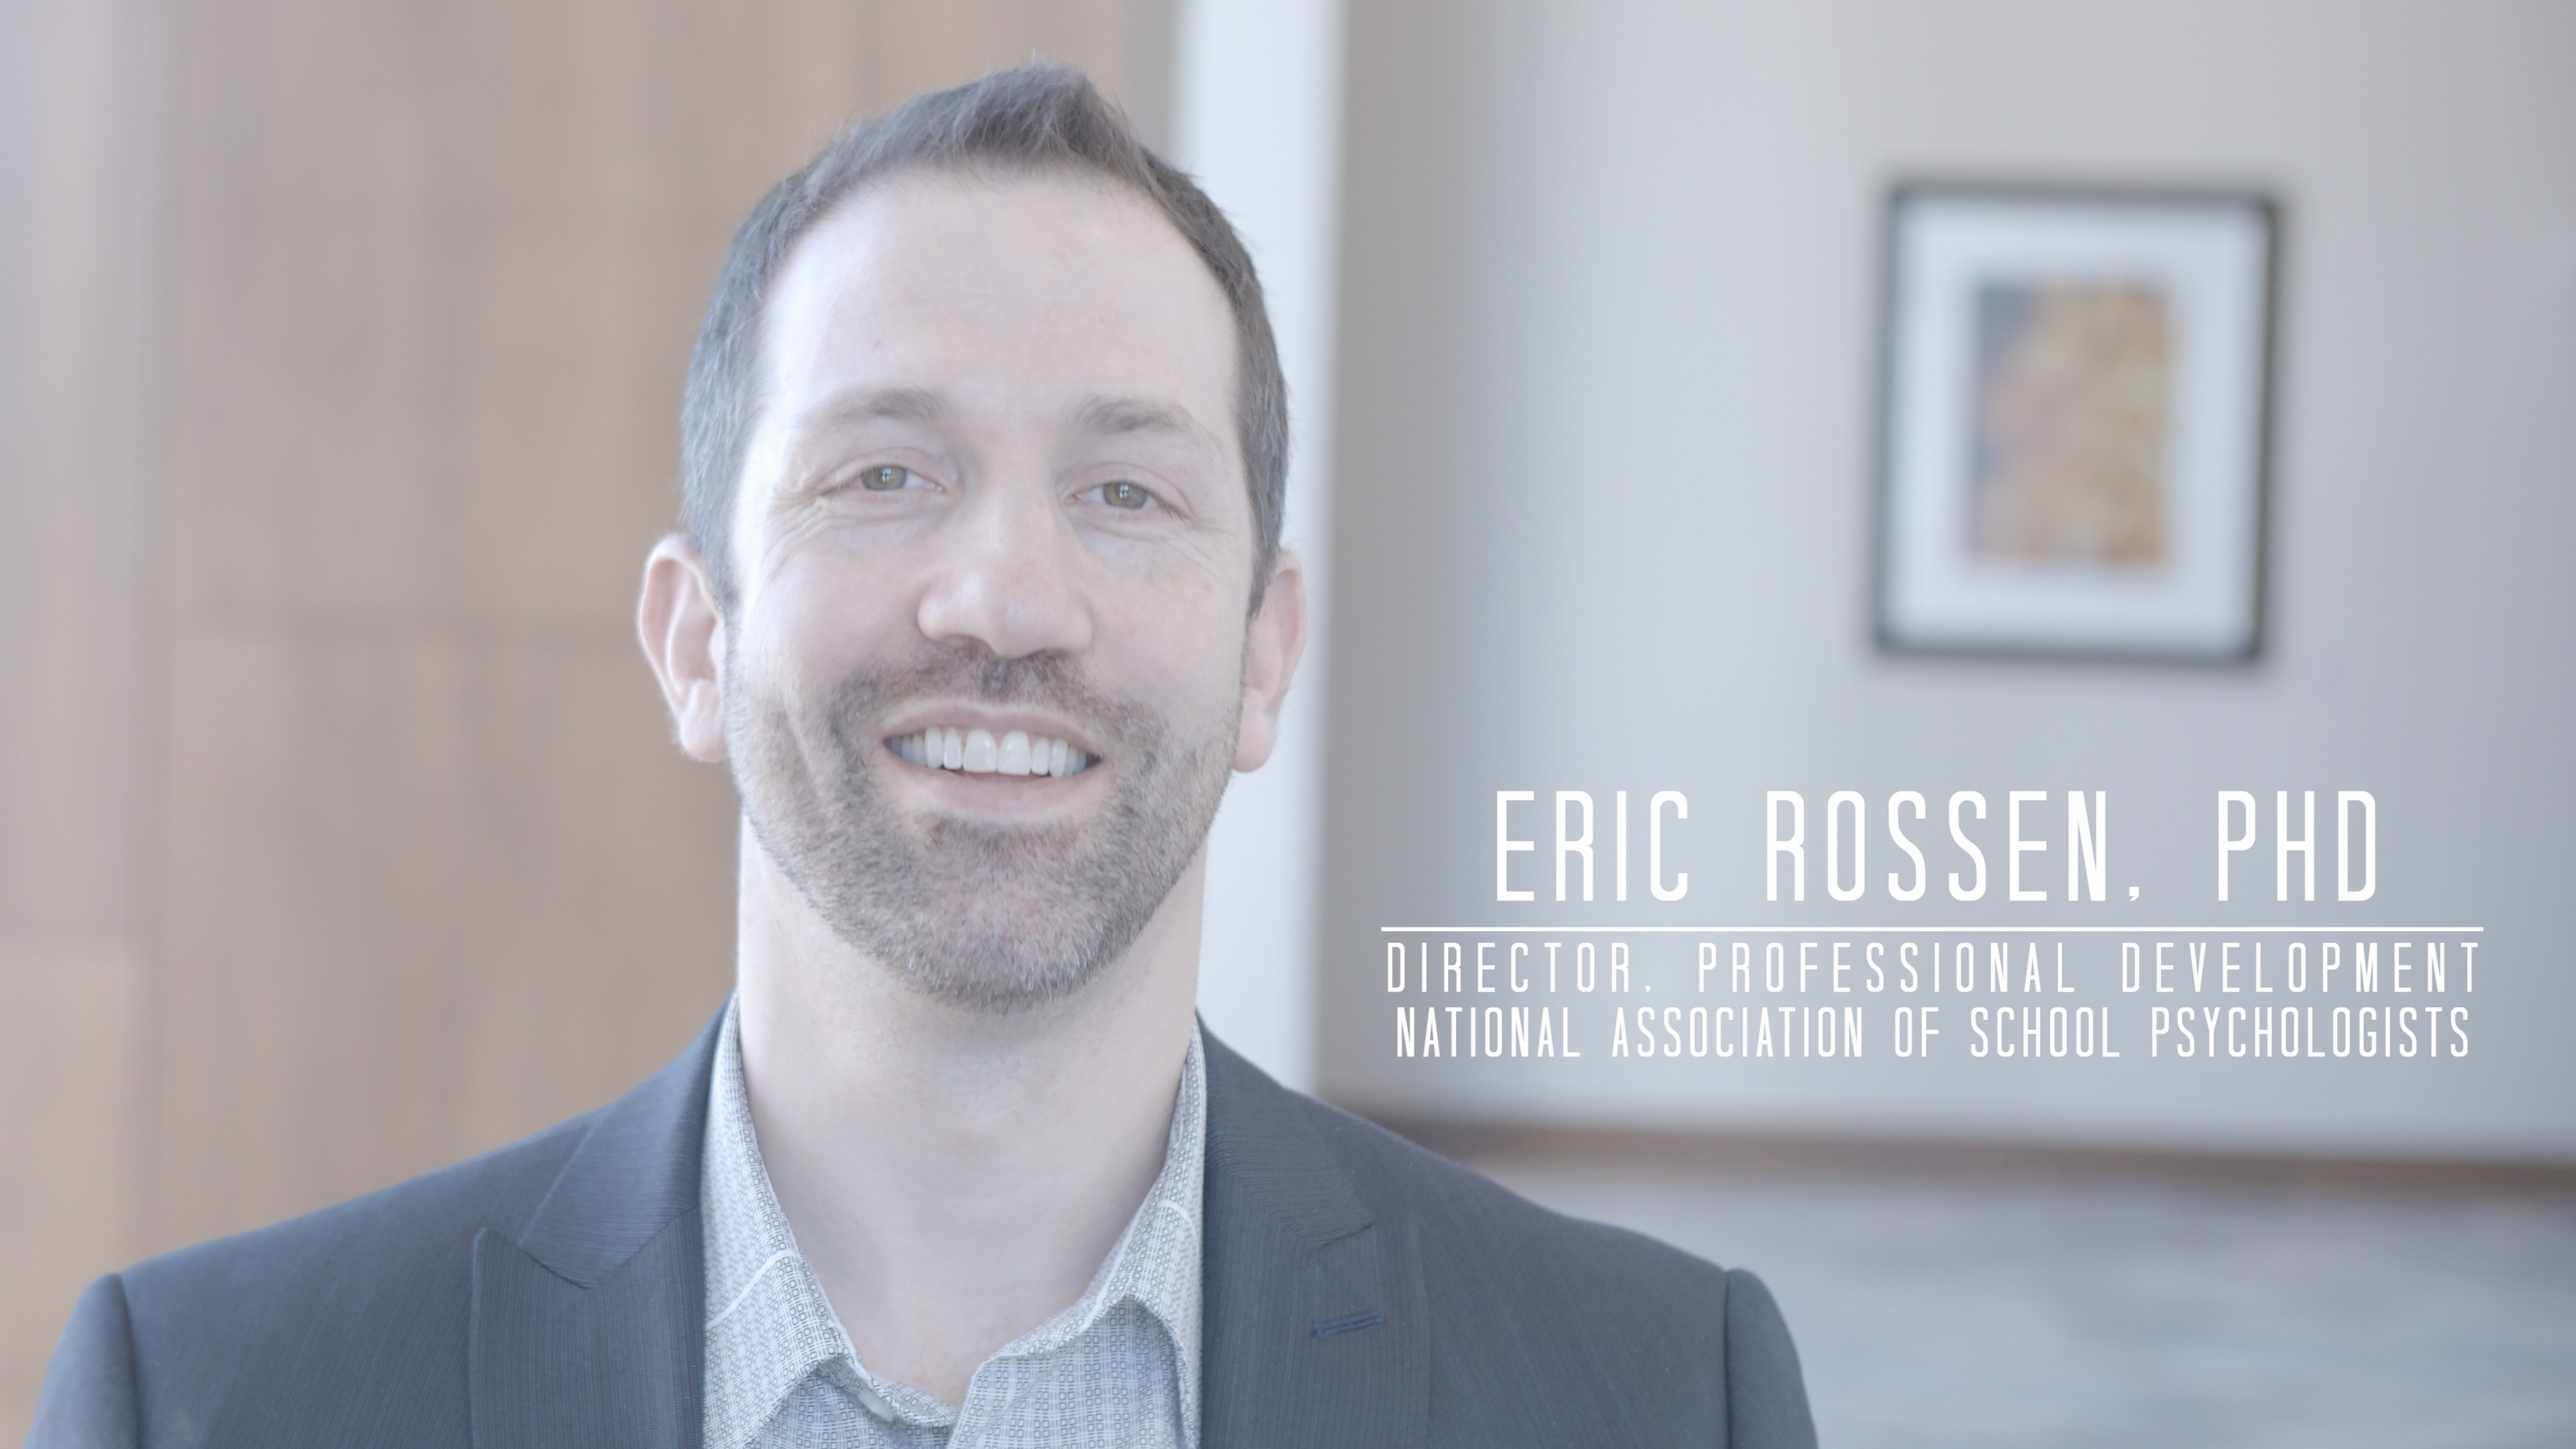 Eric Rossen, NASP Director of Professional Development, InReach Partners in Excellence